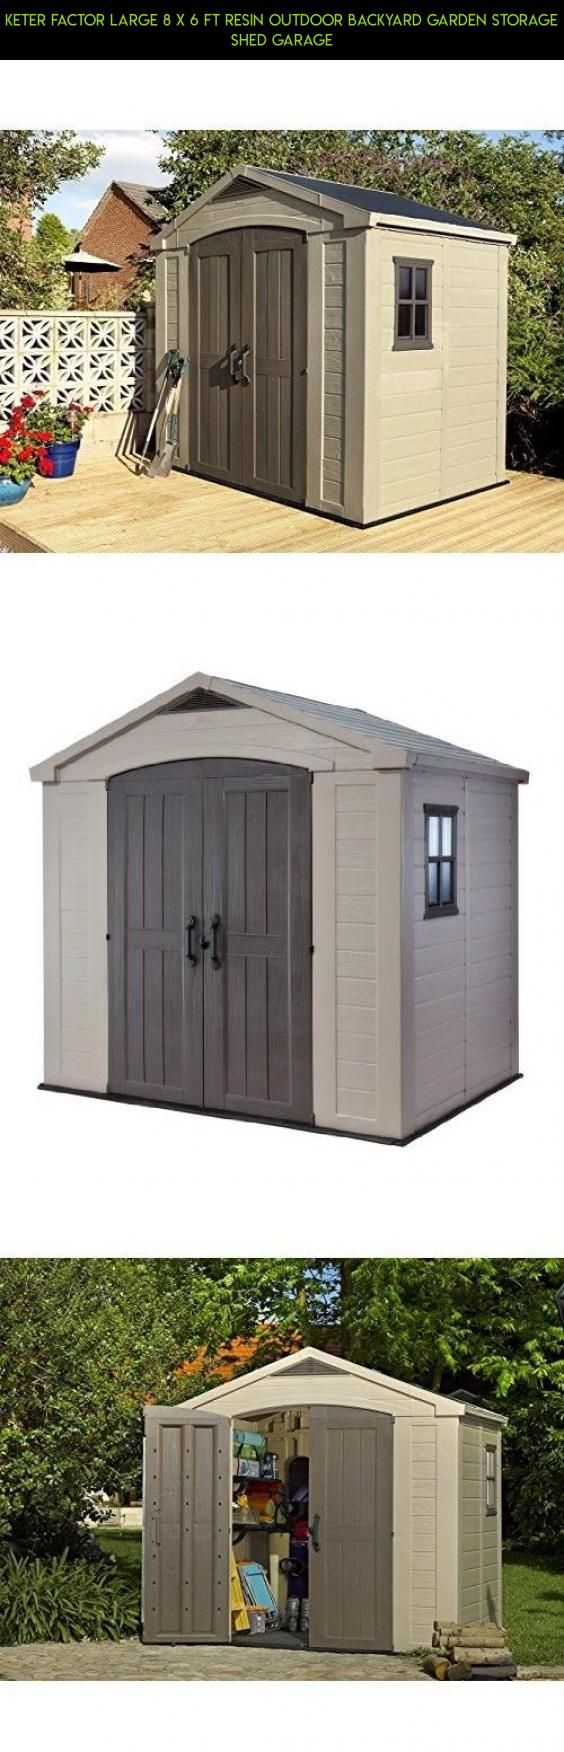 Keter Factor Large 8 x 6 ft Resin Outdoor Backyard Garden Storage Shed Garage #parts #shopping #gadgets #outdoor #technology #8x6 #plans #racing #tech #kit #& #drone #camera #sheds #storage #products #fpv